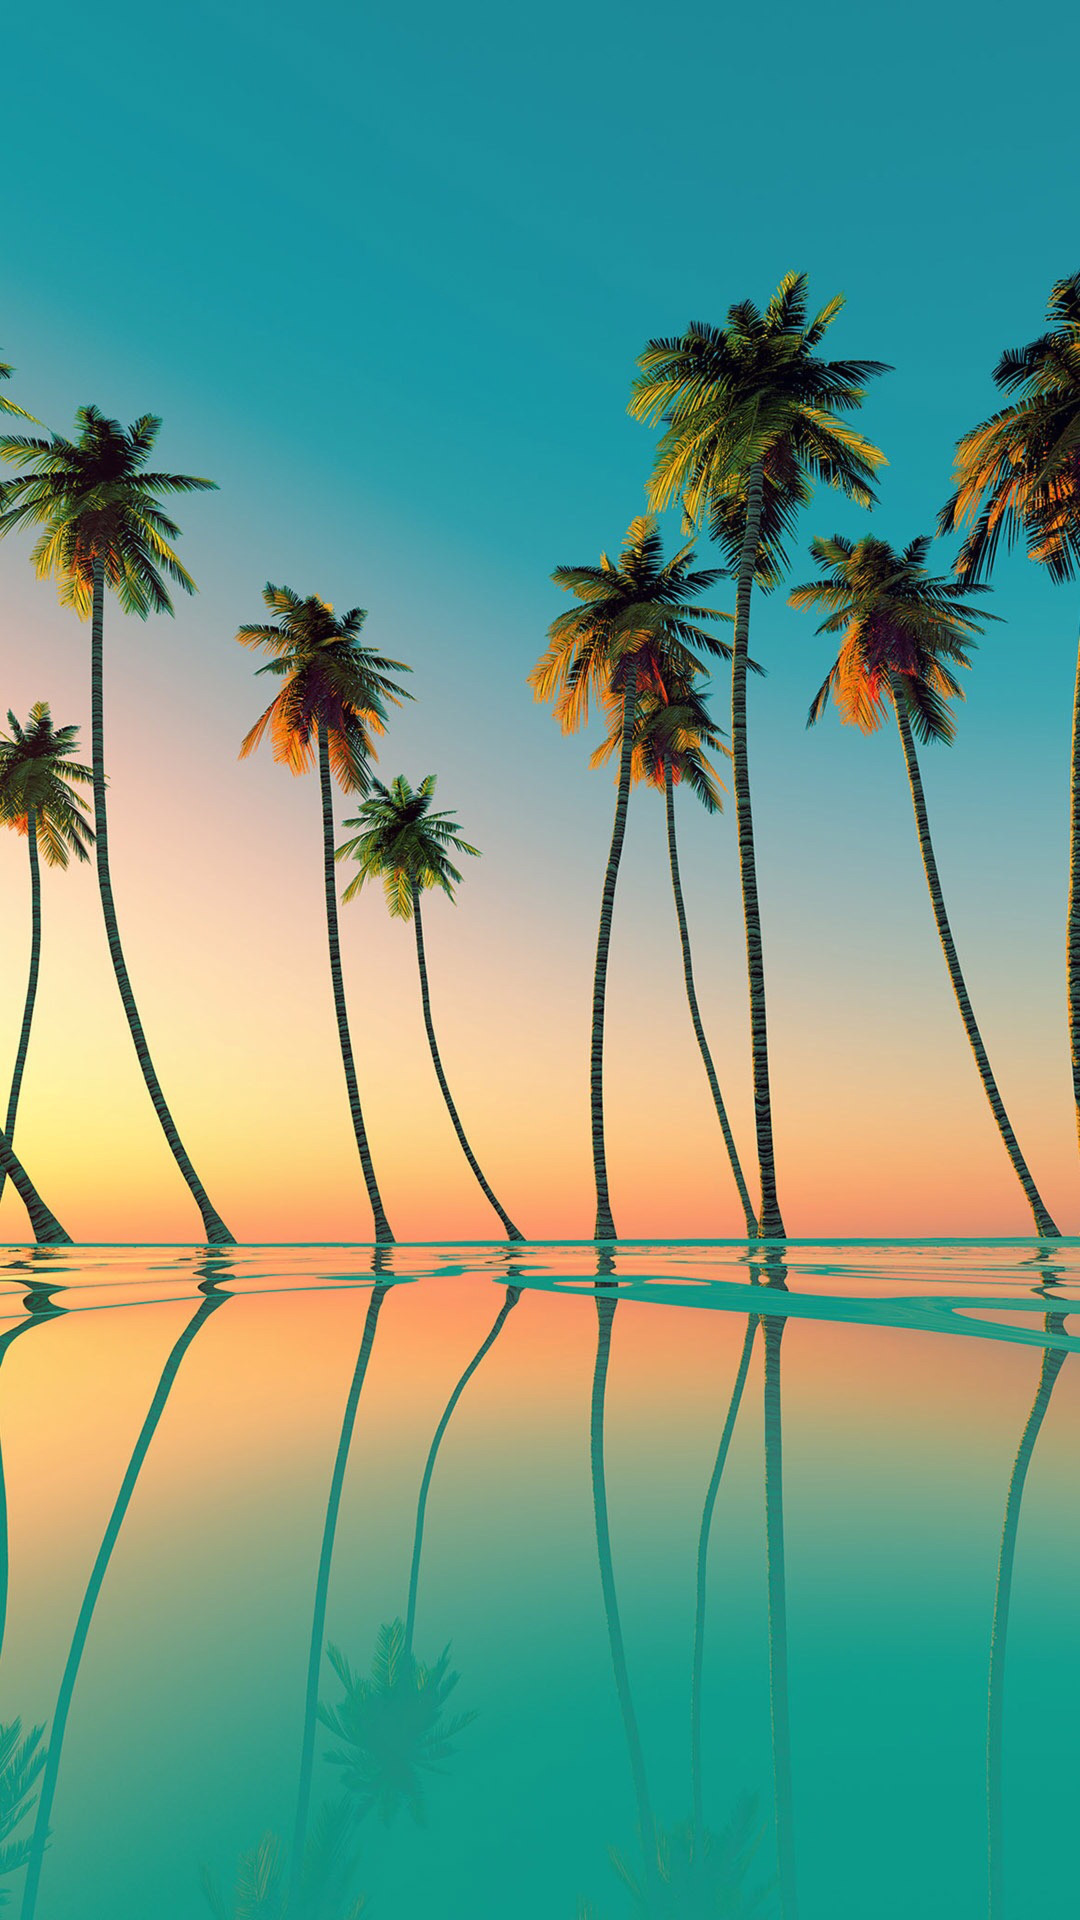 tree sky summer beach sea coconut tropical vacation palm water